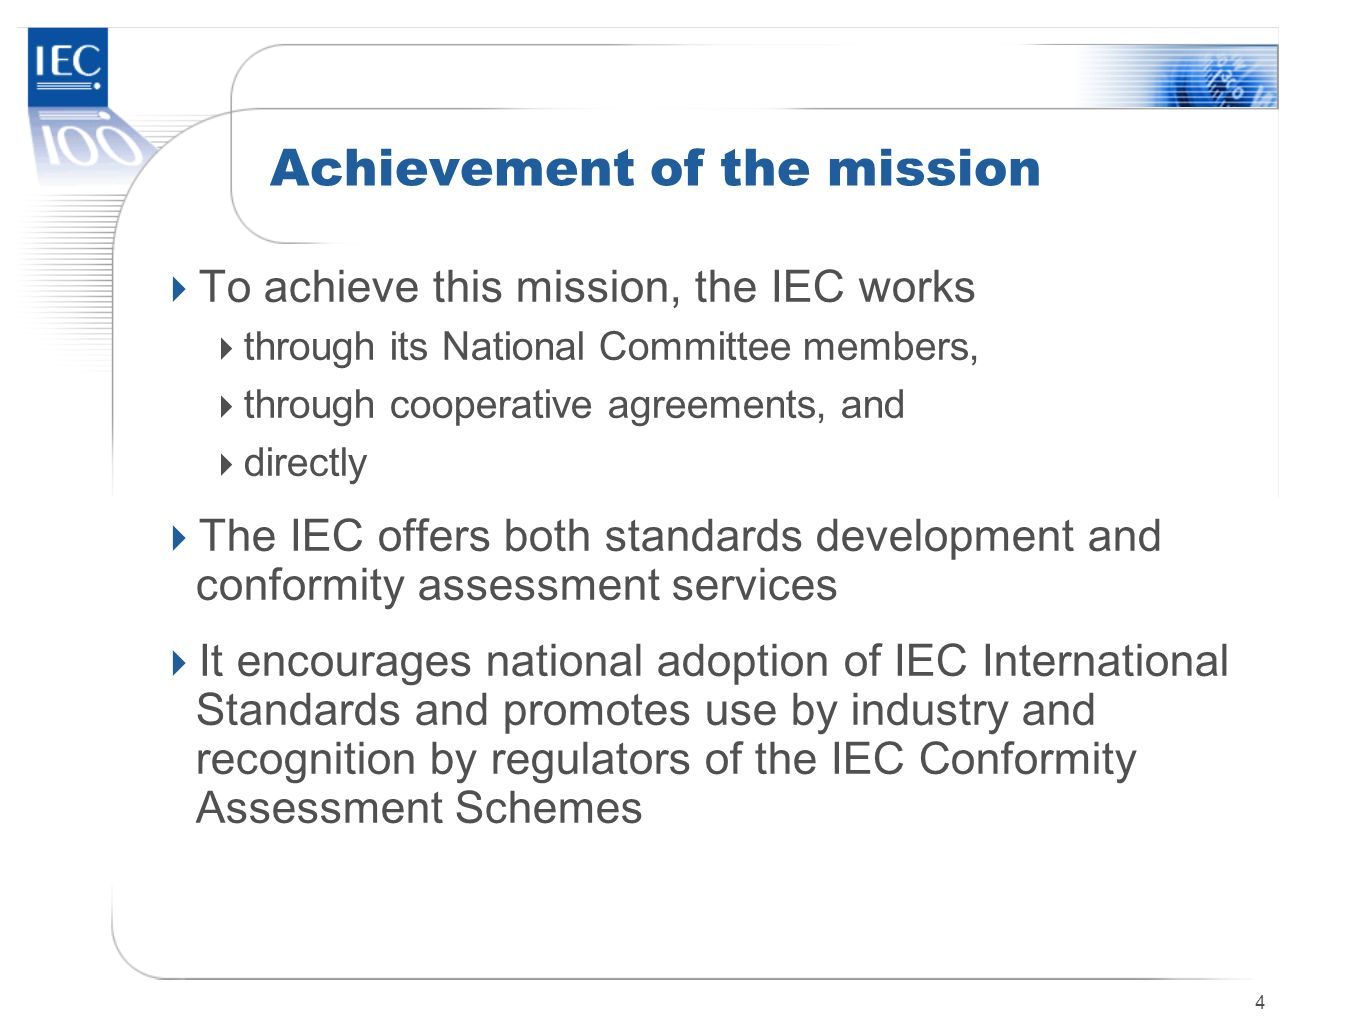 4 Achievement of the mission To achieve this mission, the IEC works through its National Committee members, through cooperative agreements, and direct